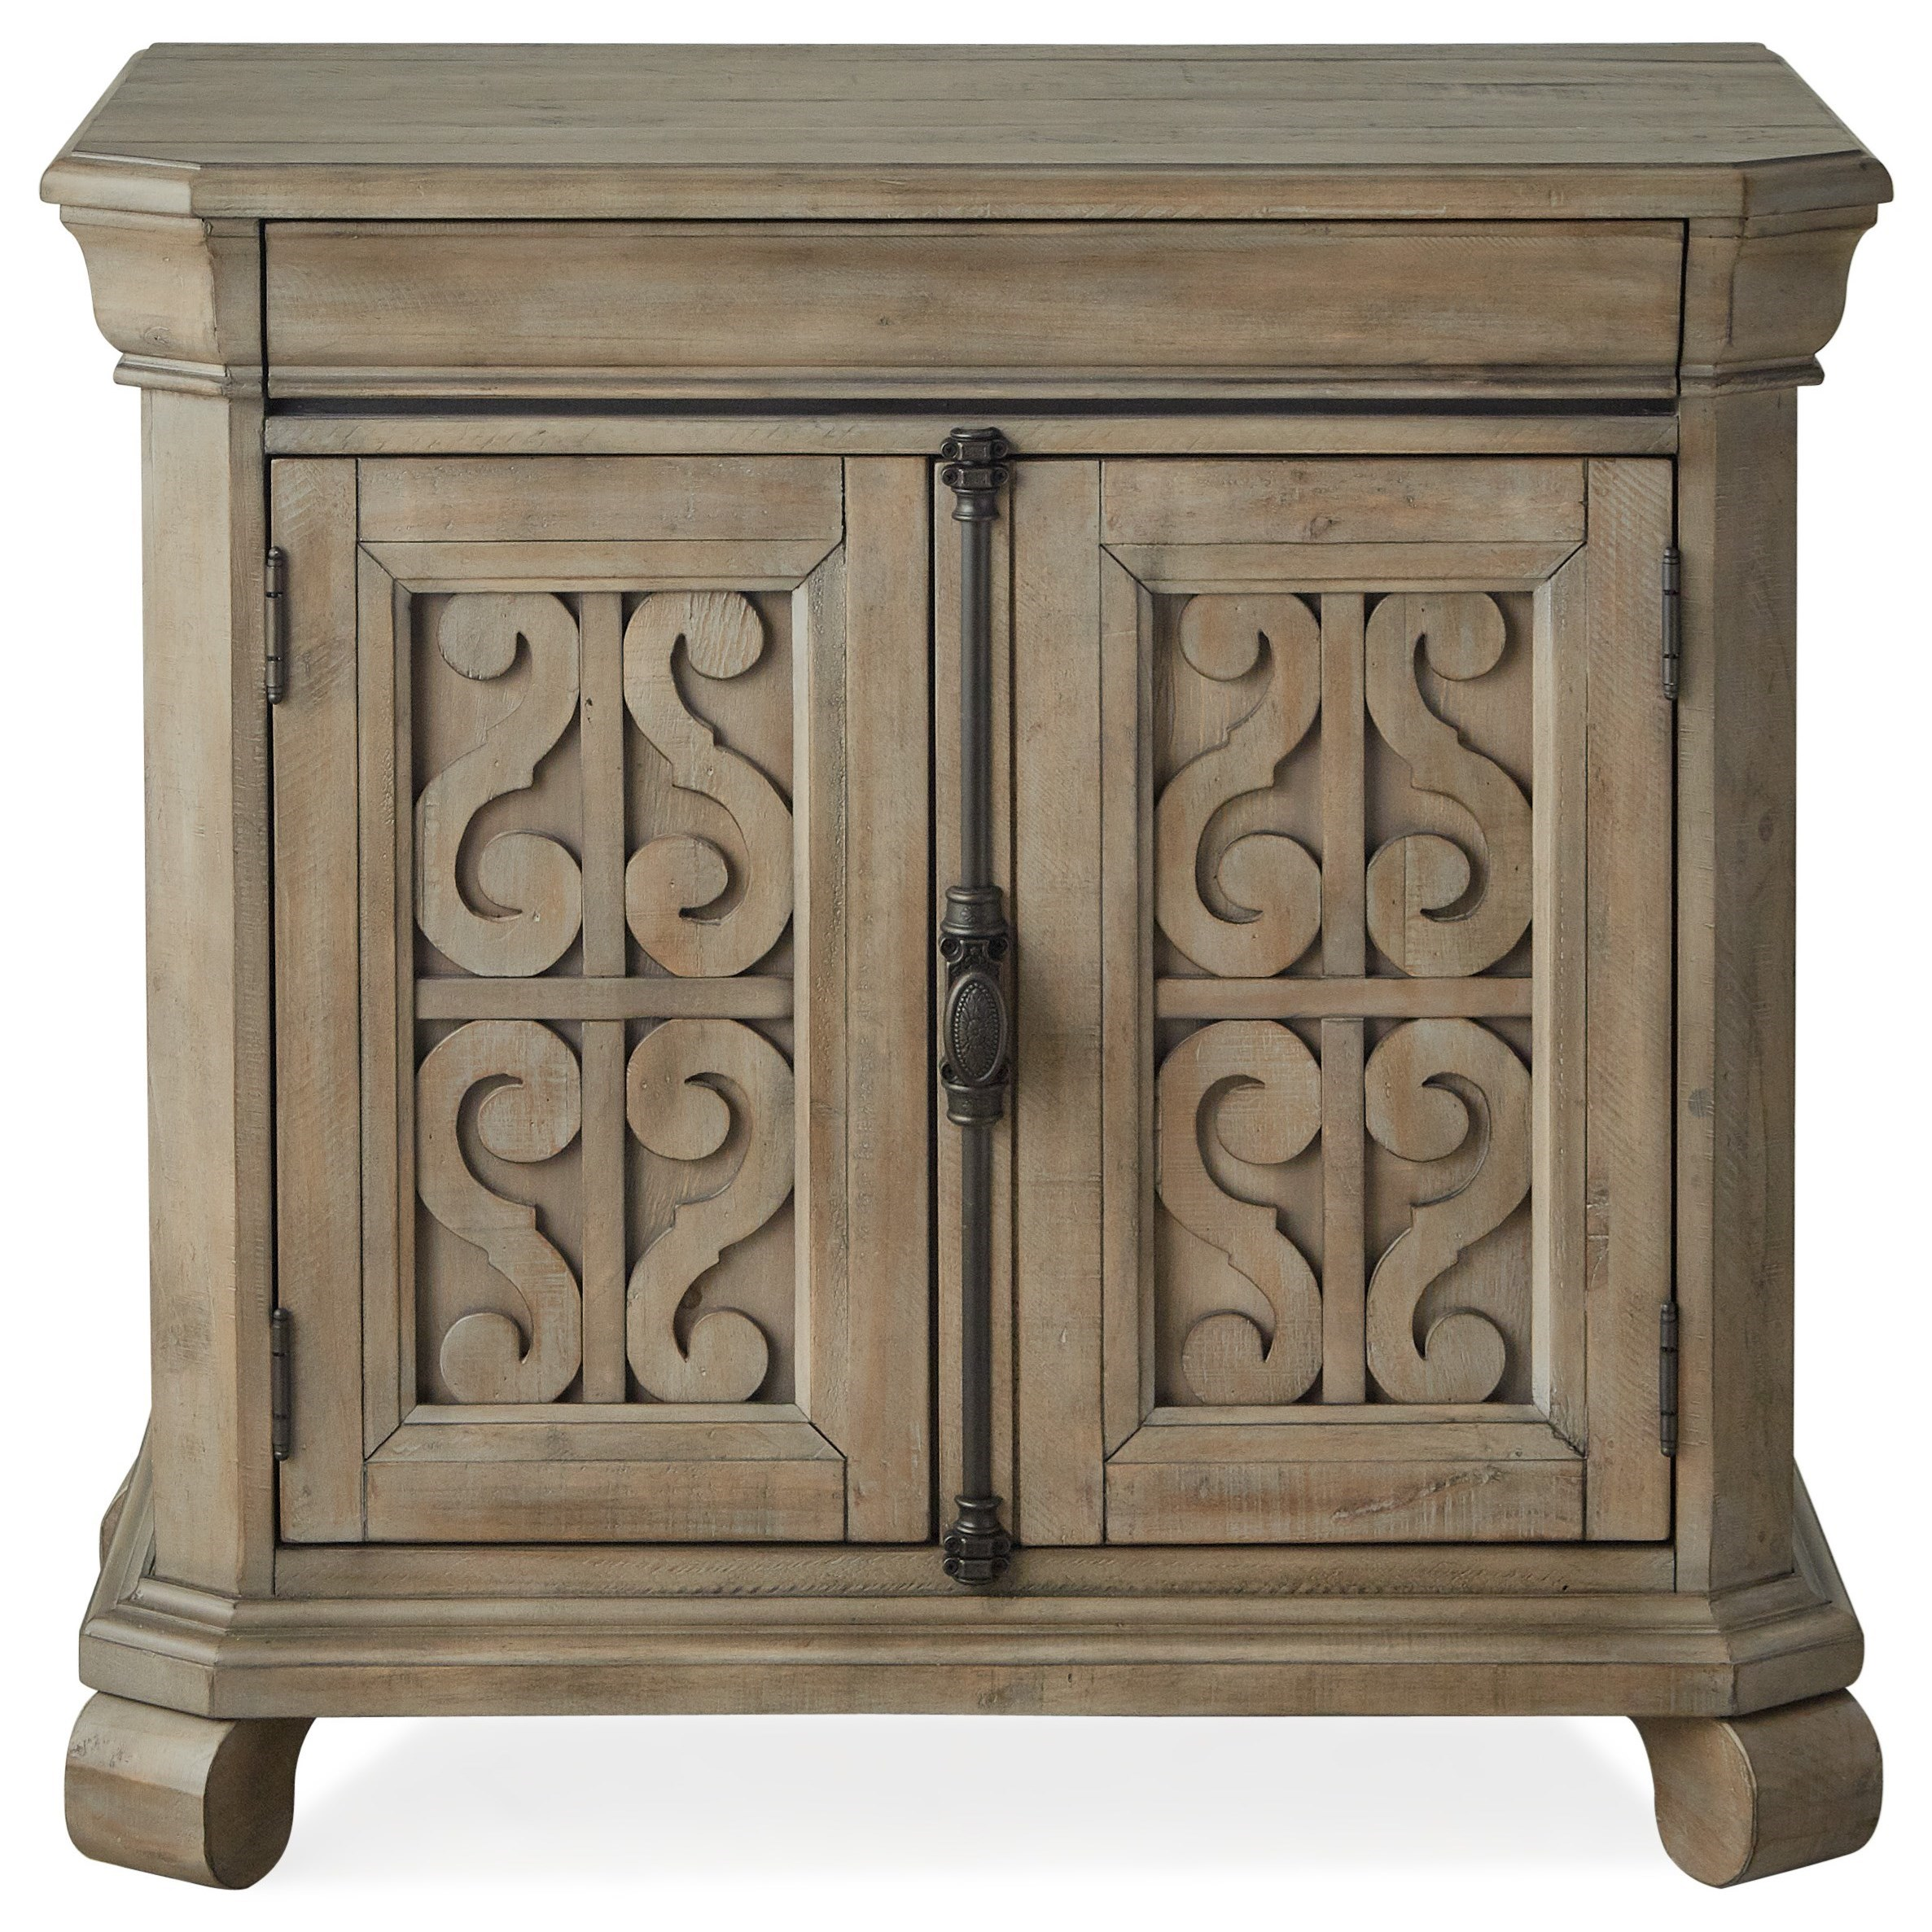 Tinley Park Bachelor Chest by Magnussen Home at Baer's Furniture